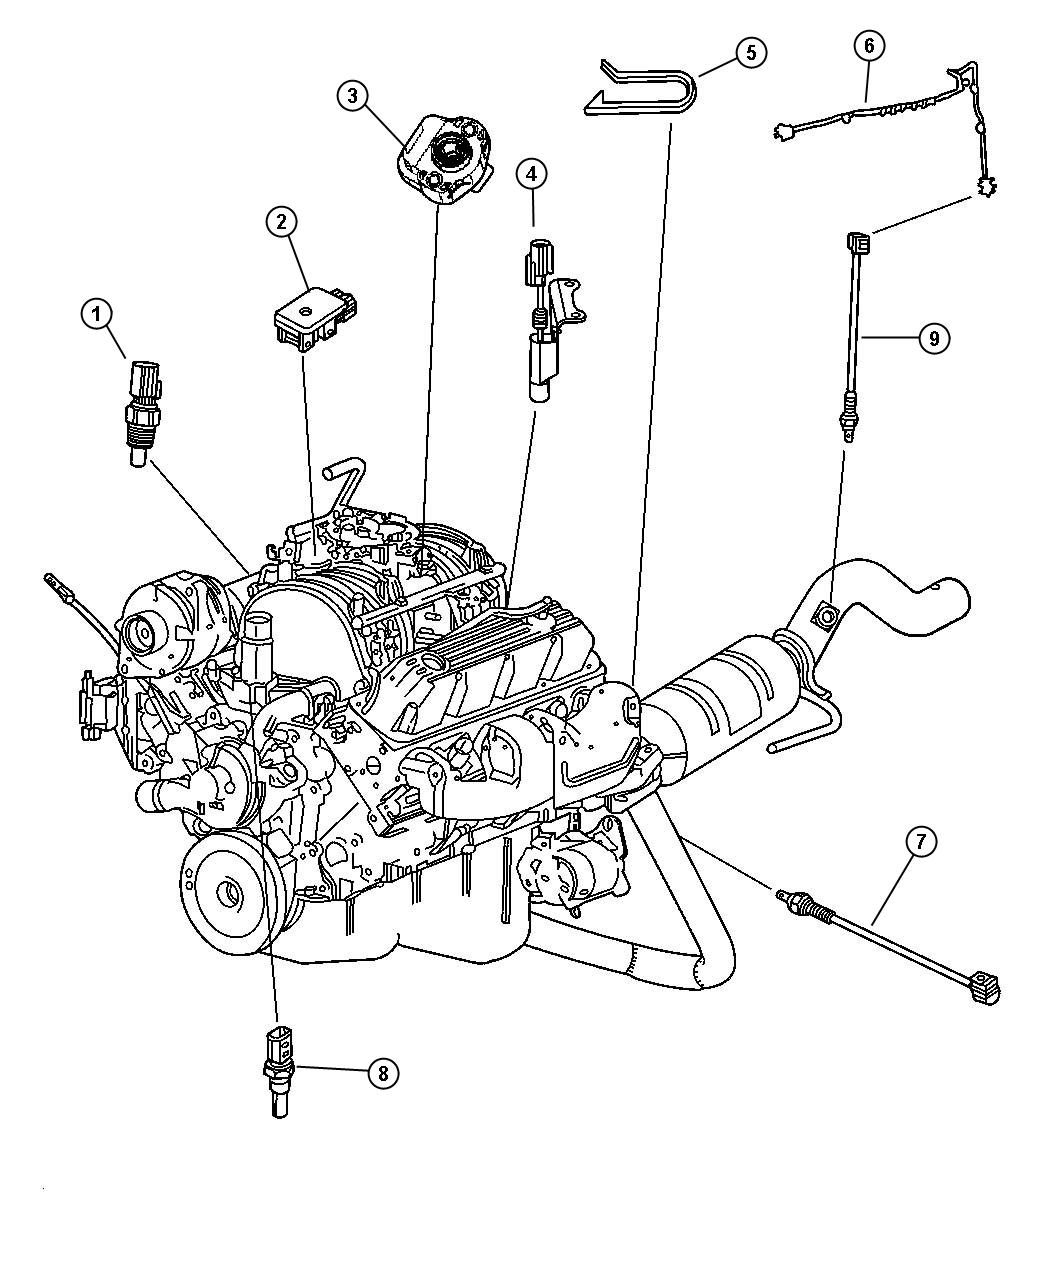 90 integra wiring diagram